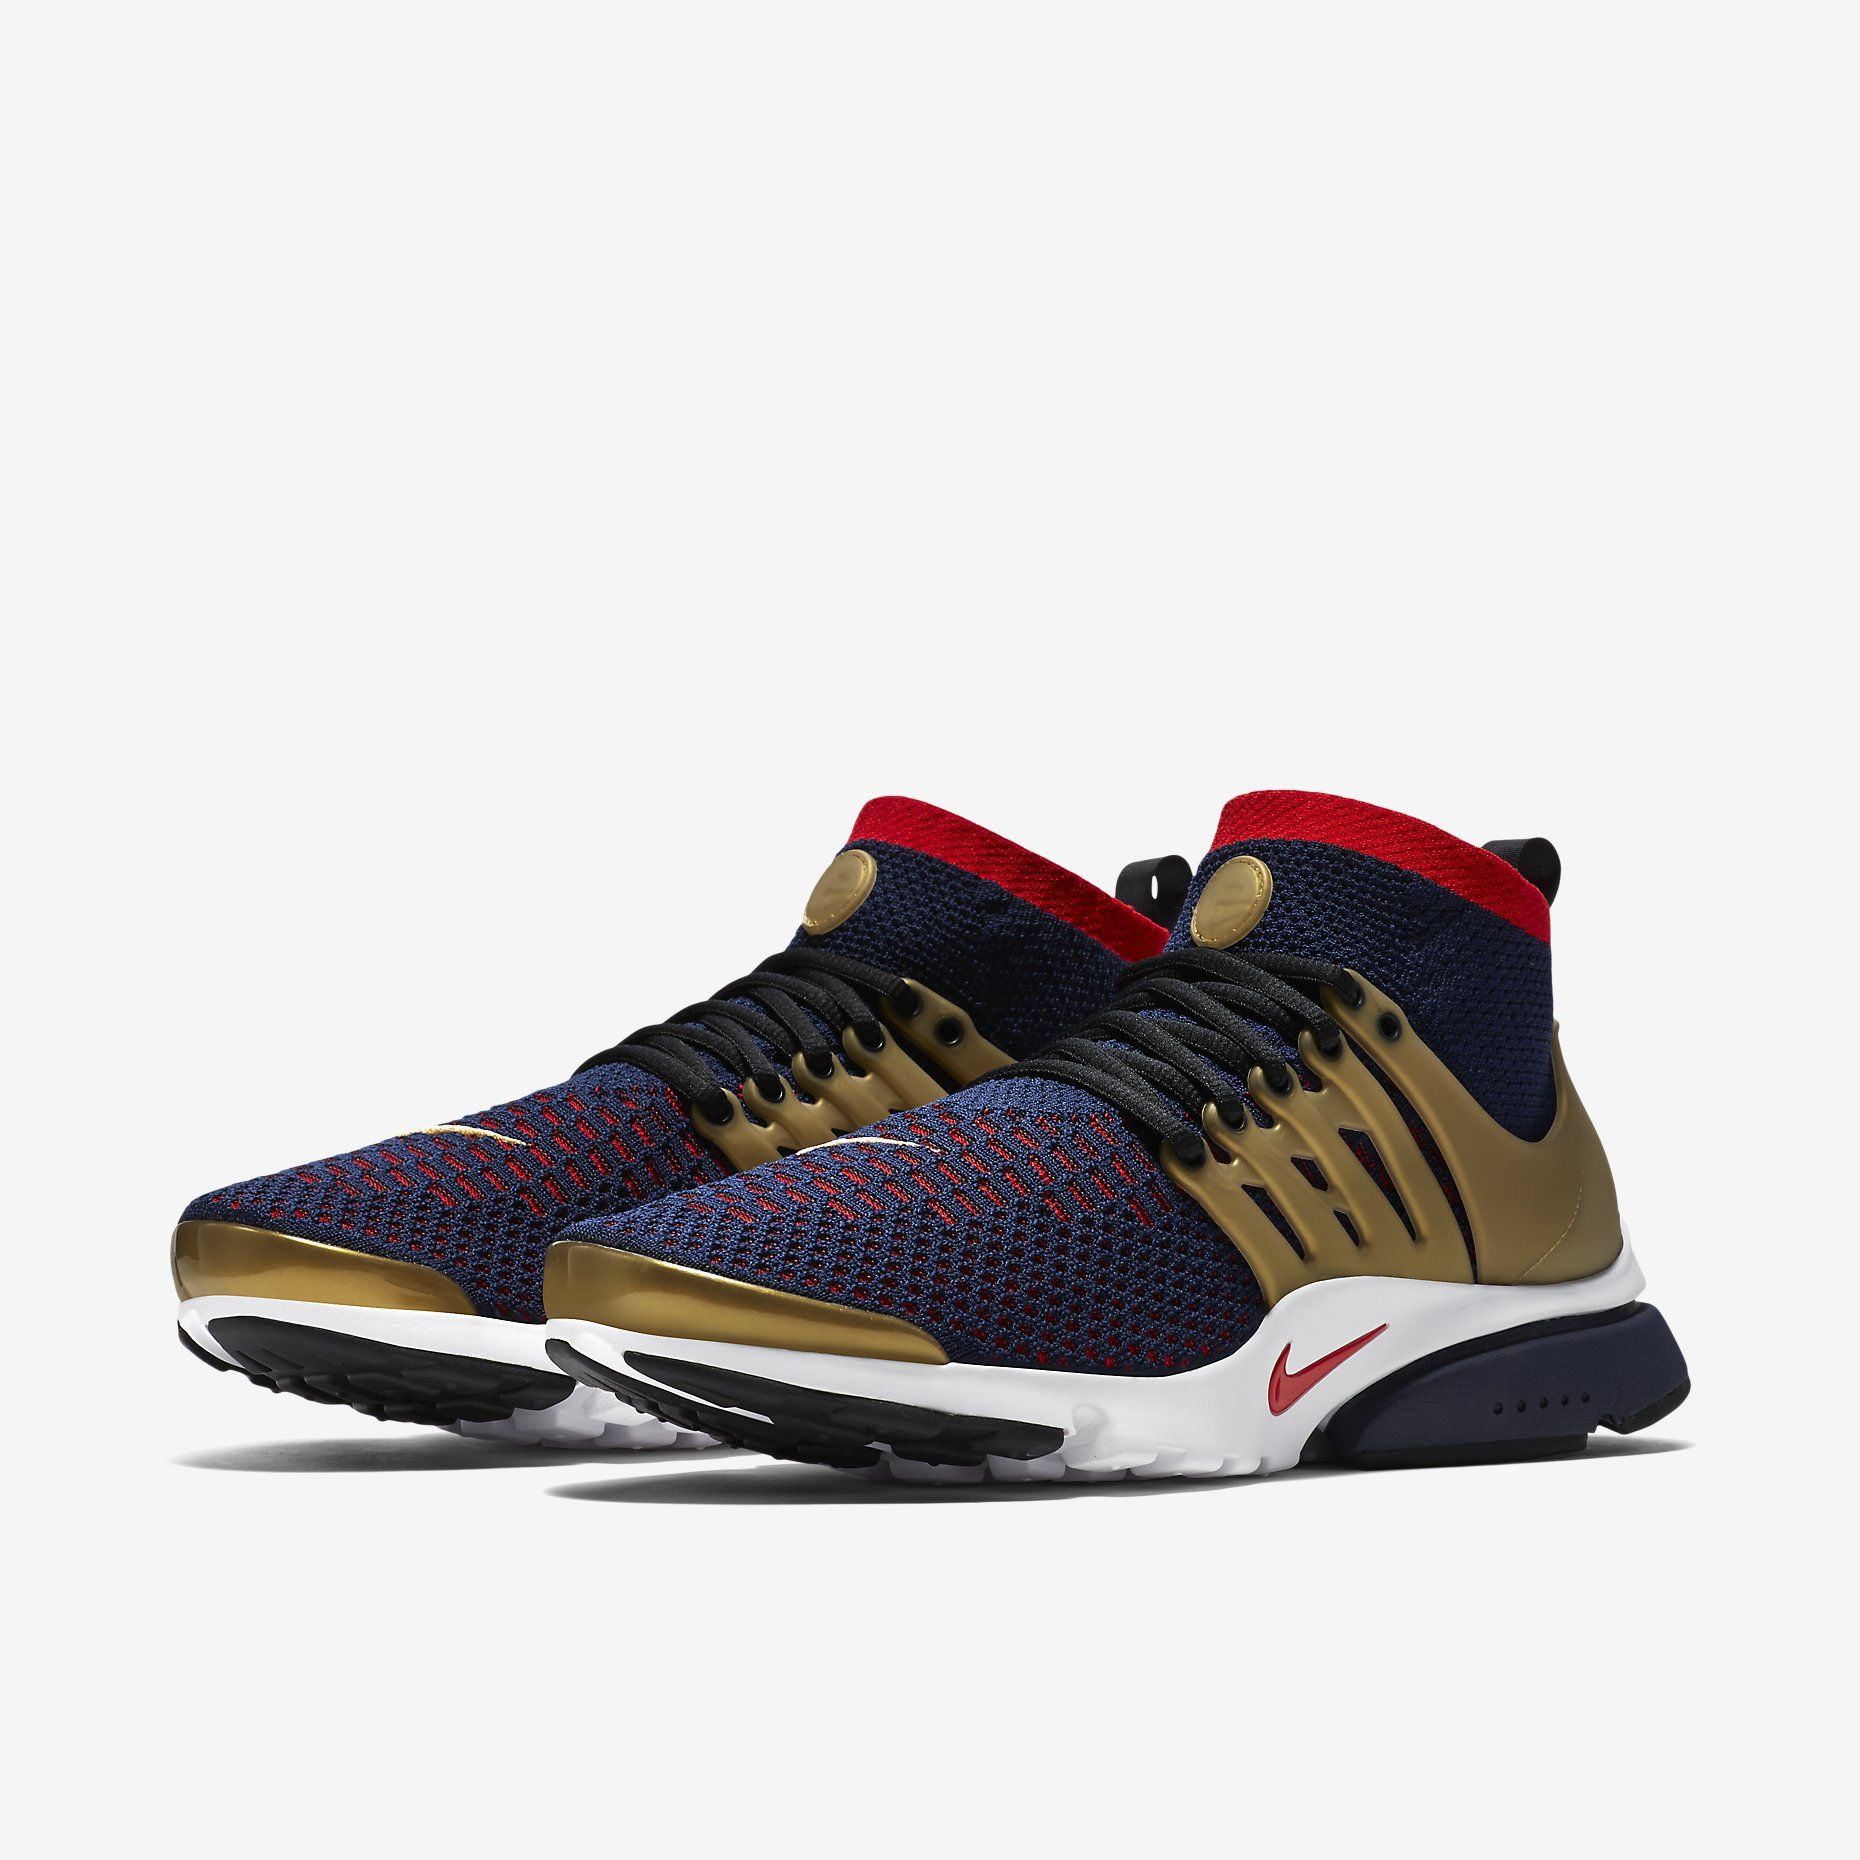 0792a79348a5 Nike Air Presto Ultra Flyknit (College Navy Metallic Gold White Comet Red)